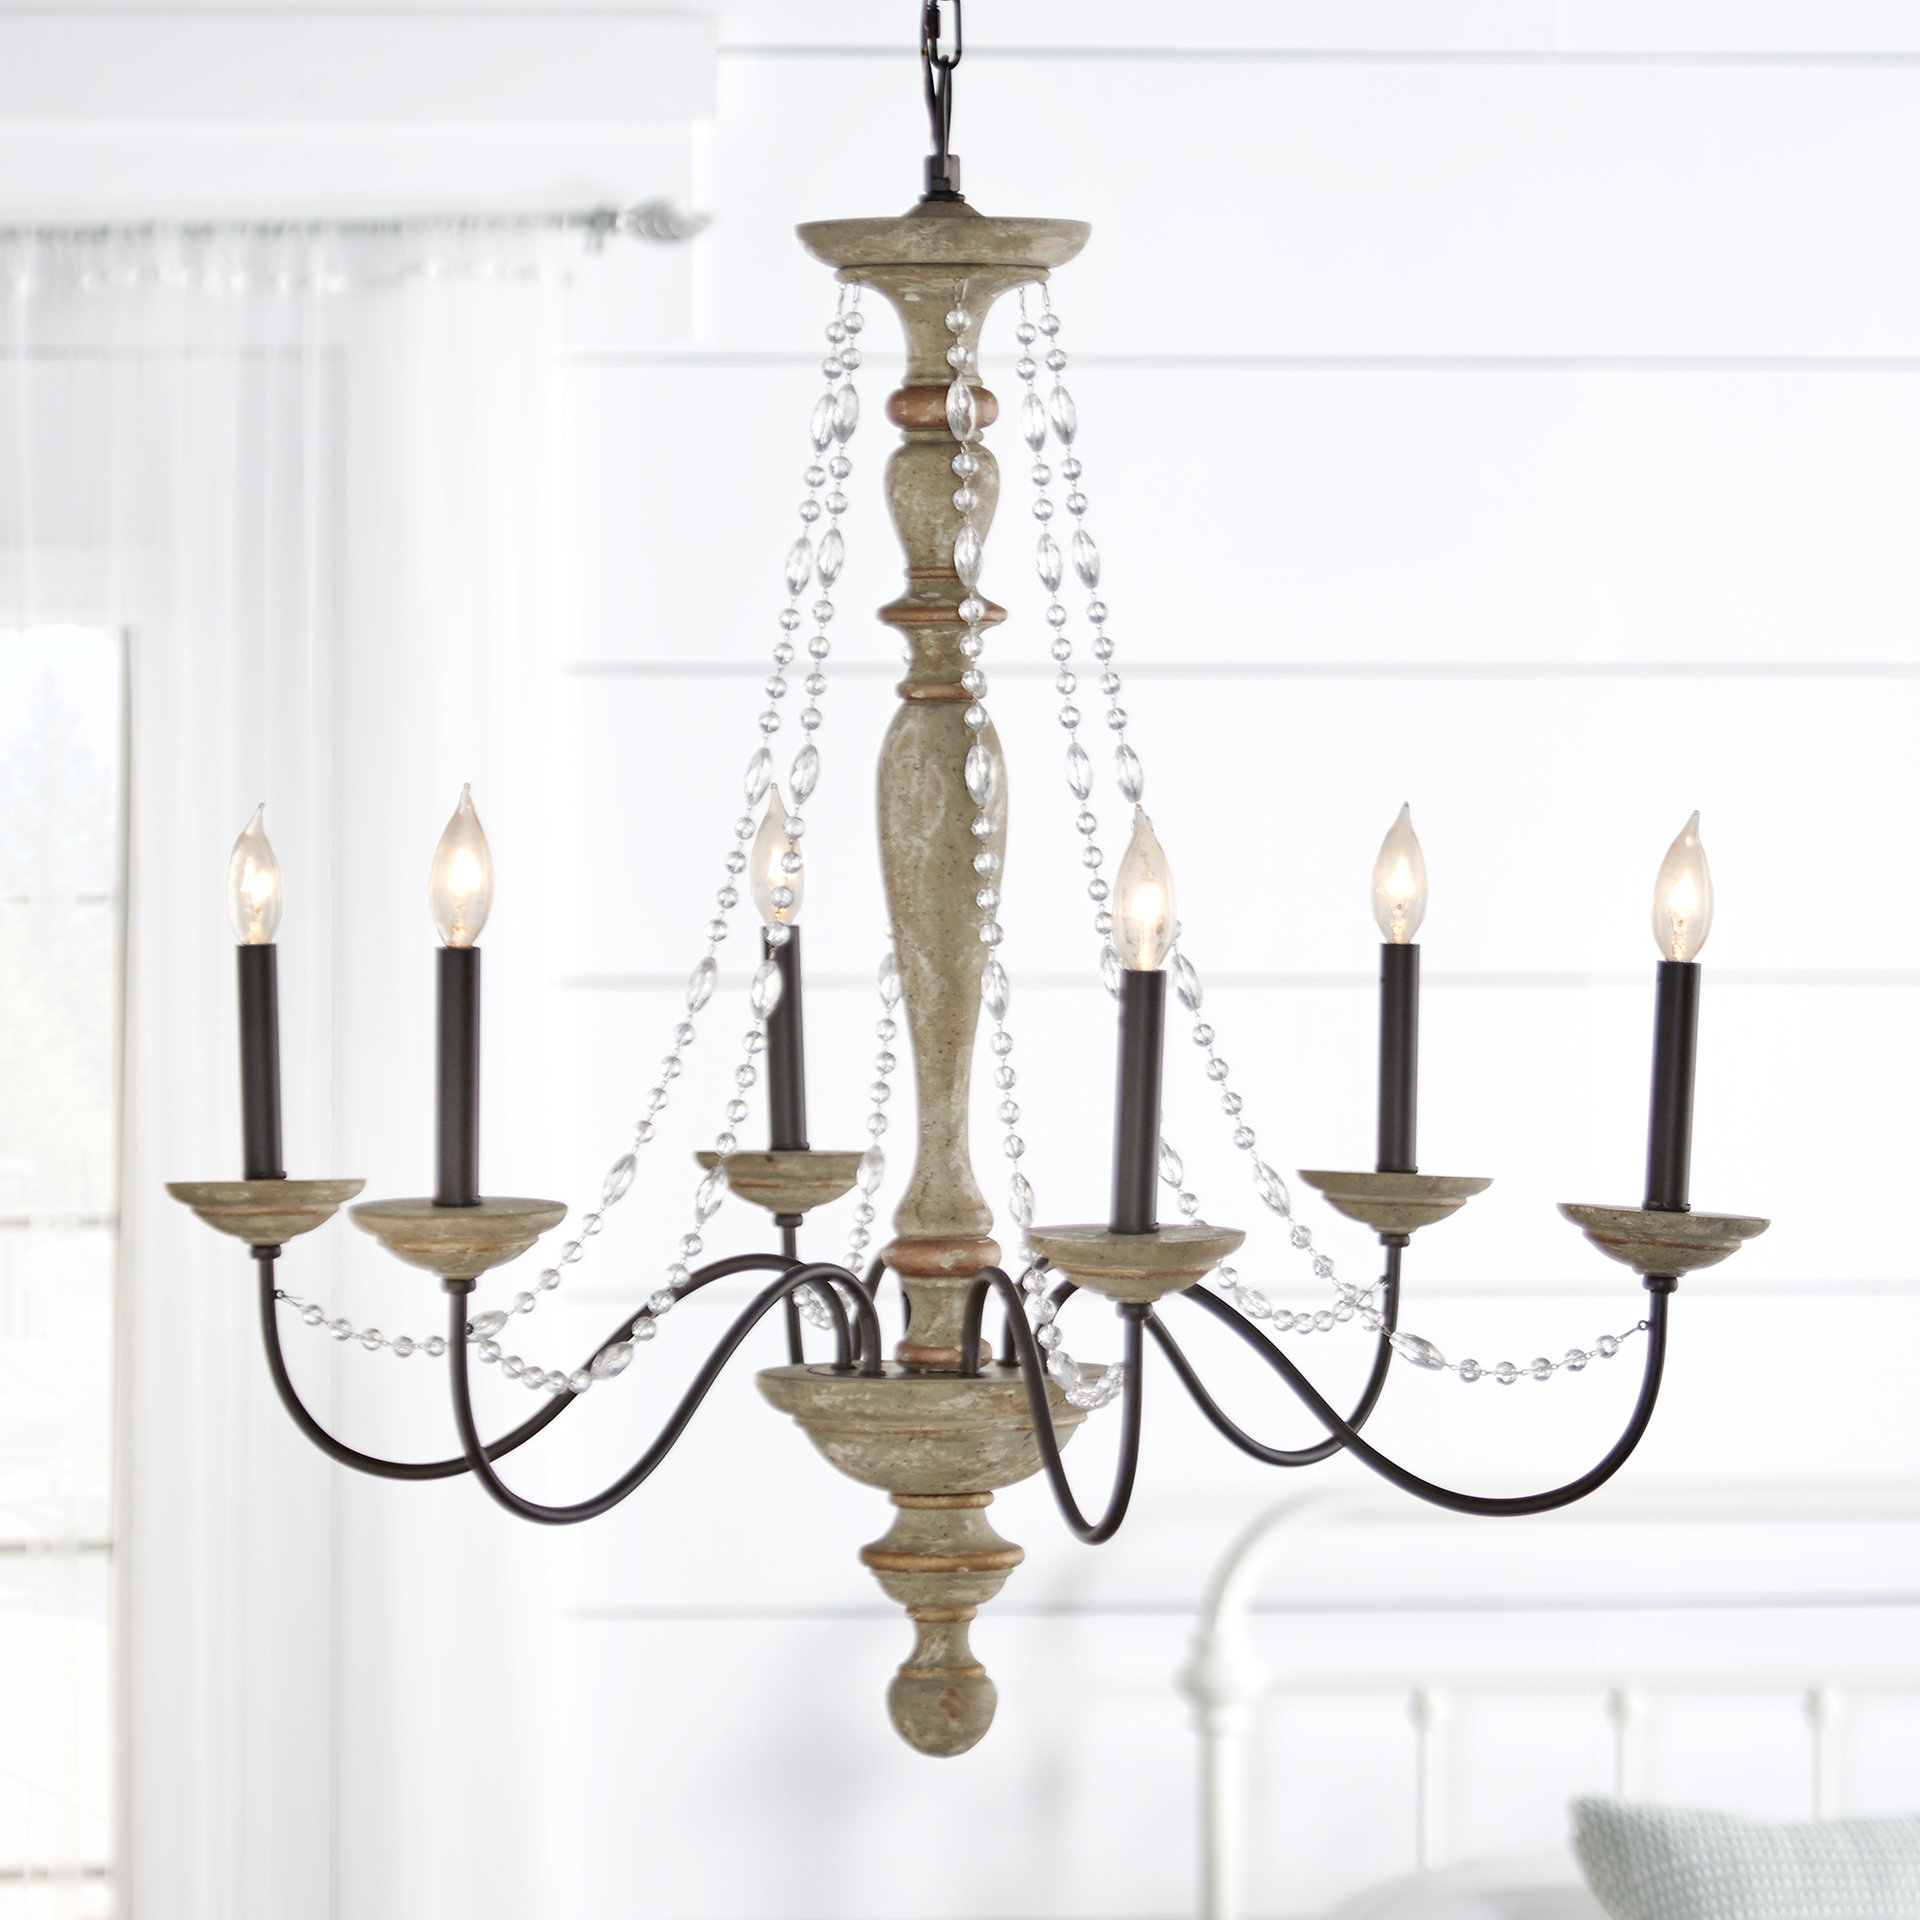 Three Posts Brennon 6 Light Candle Style Chandelier Pertaining To Most Up To Date Armande Candle Style Chandeliers (View 13 of 25)